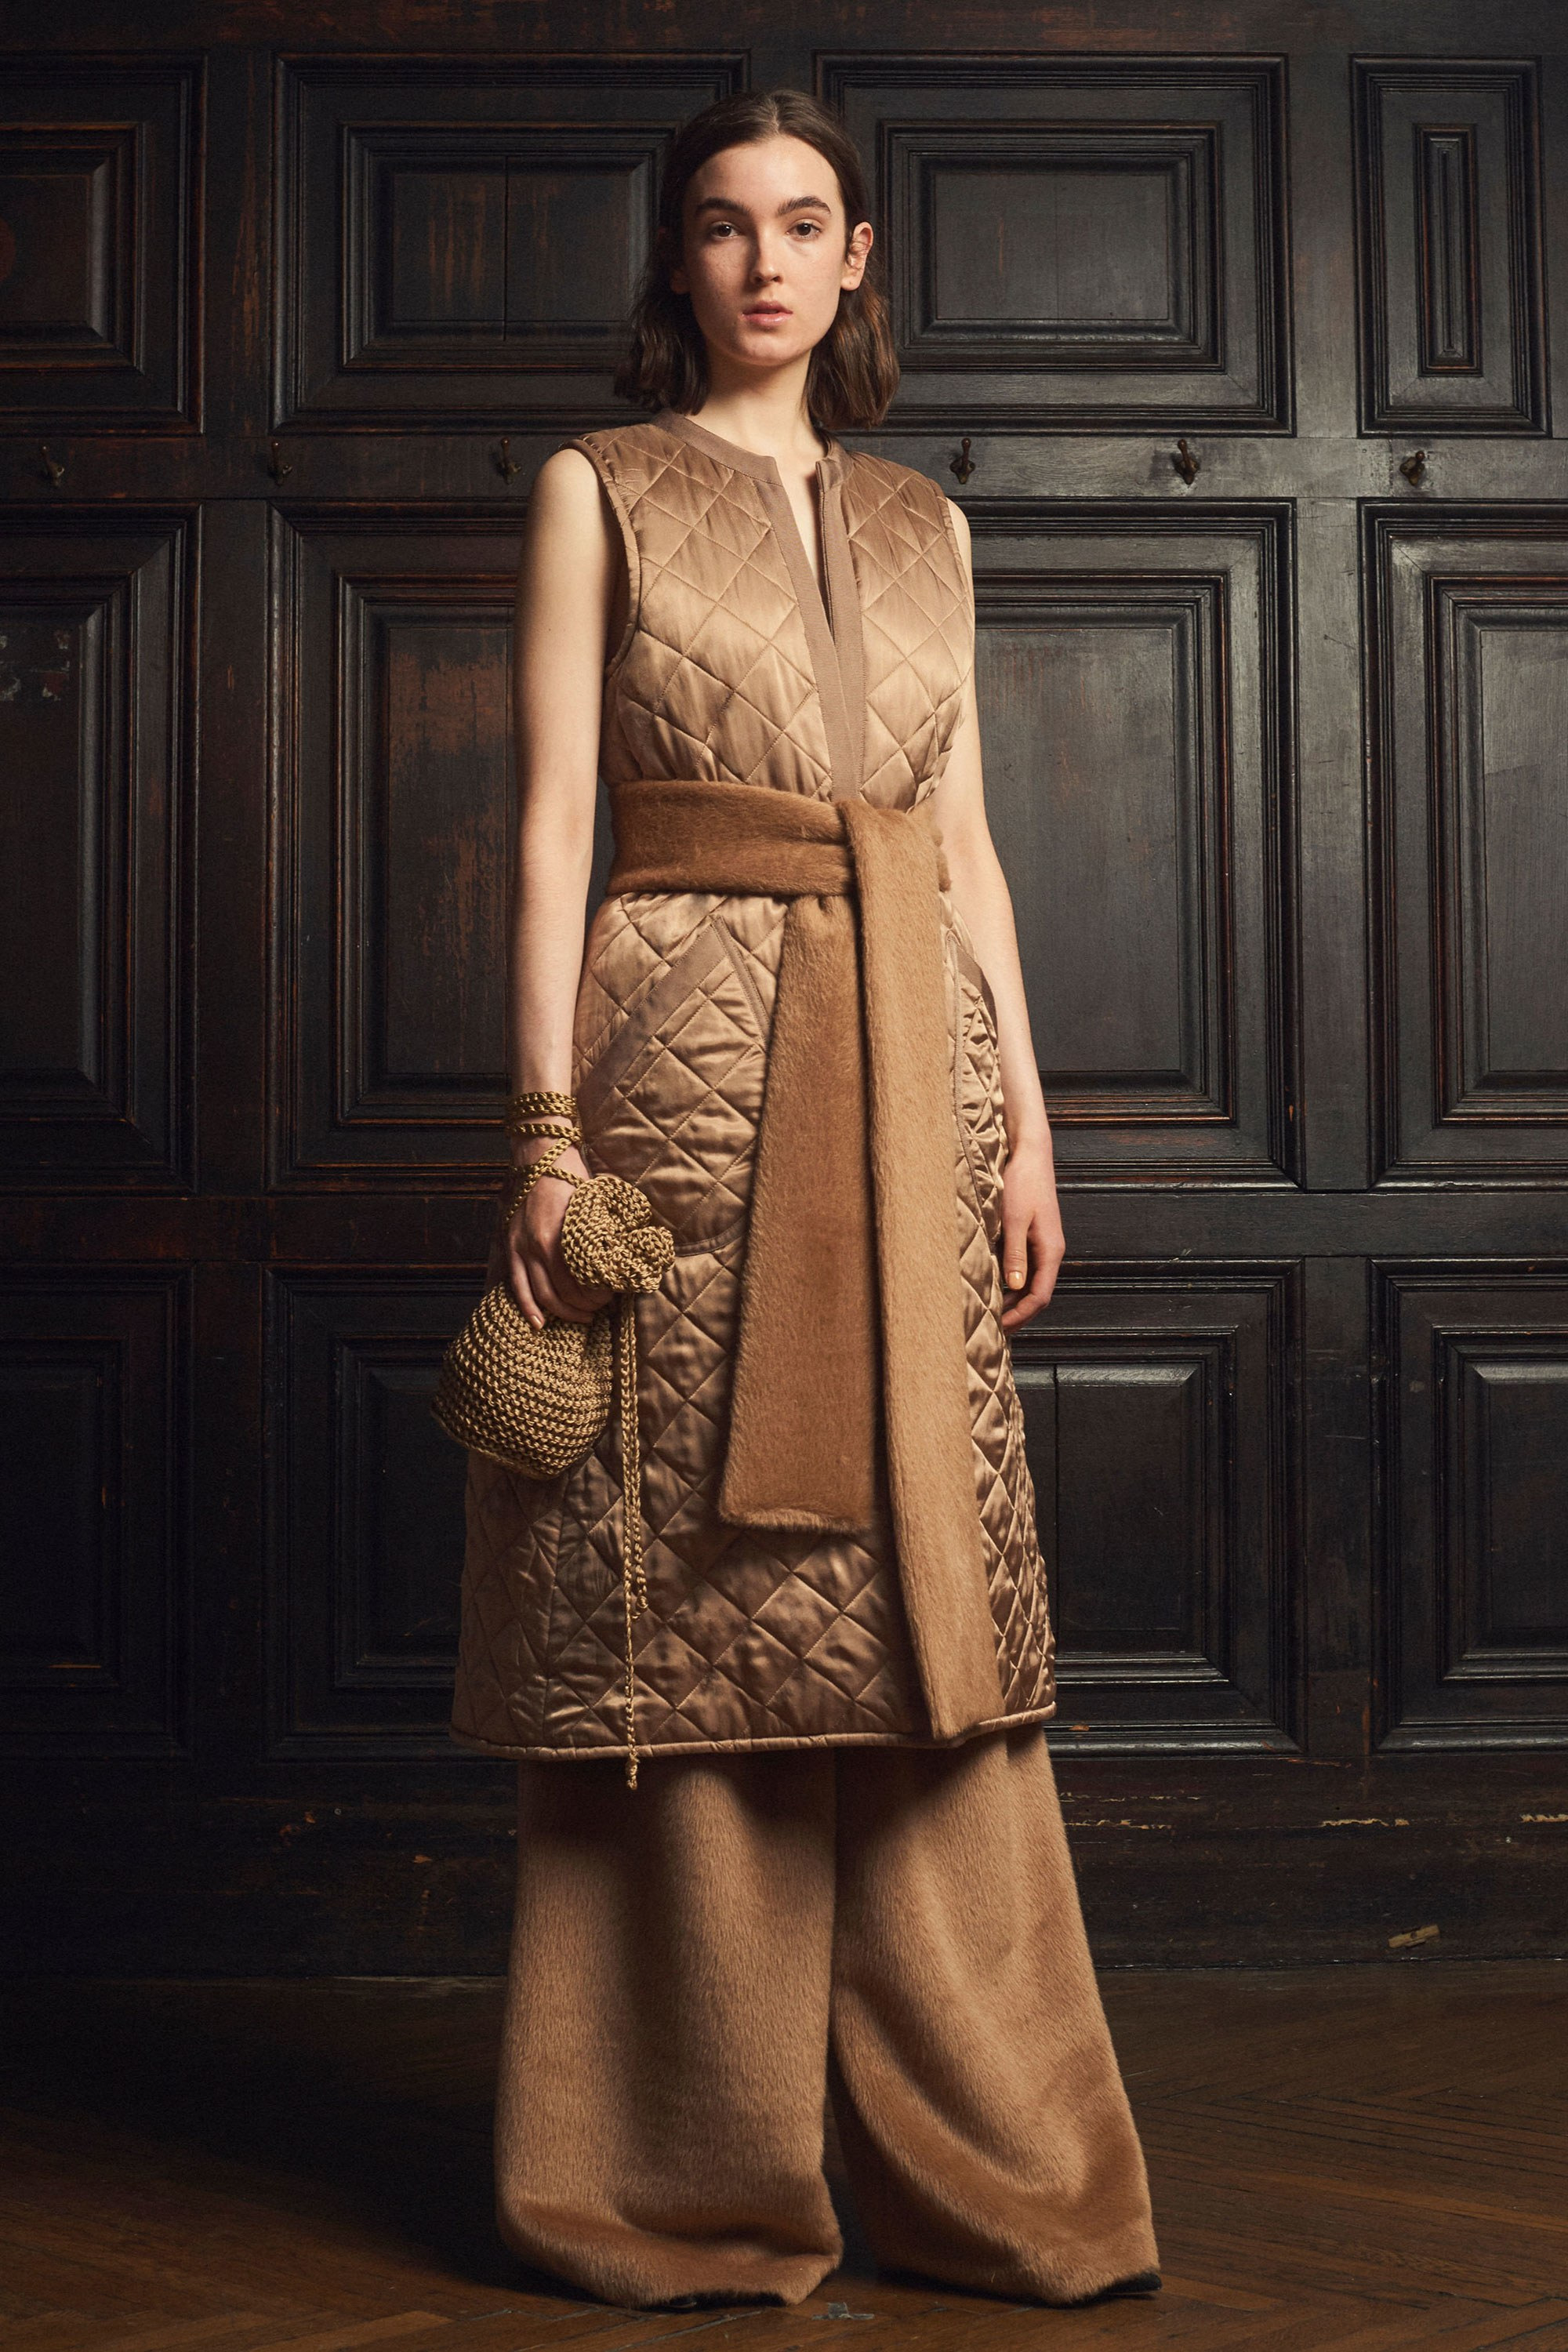 Marina Moscone - For the most stunning fabric manipulation.